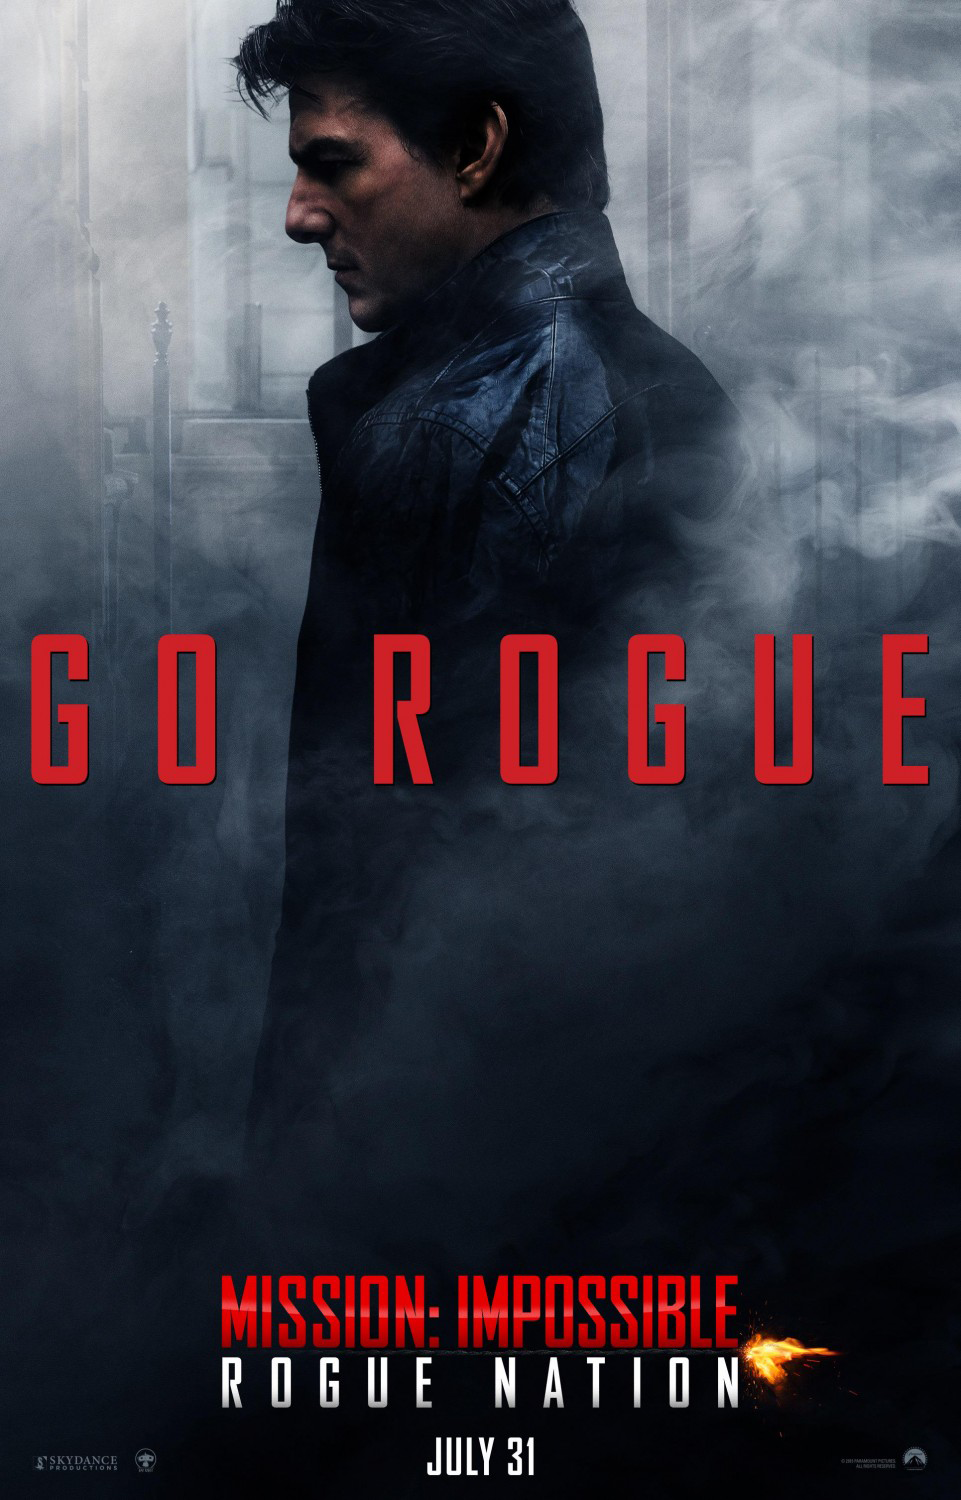 Mission Impossible: Rogue Nation Poster - Tom Cruise